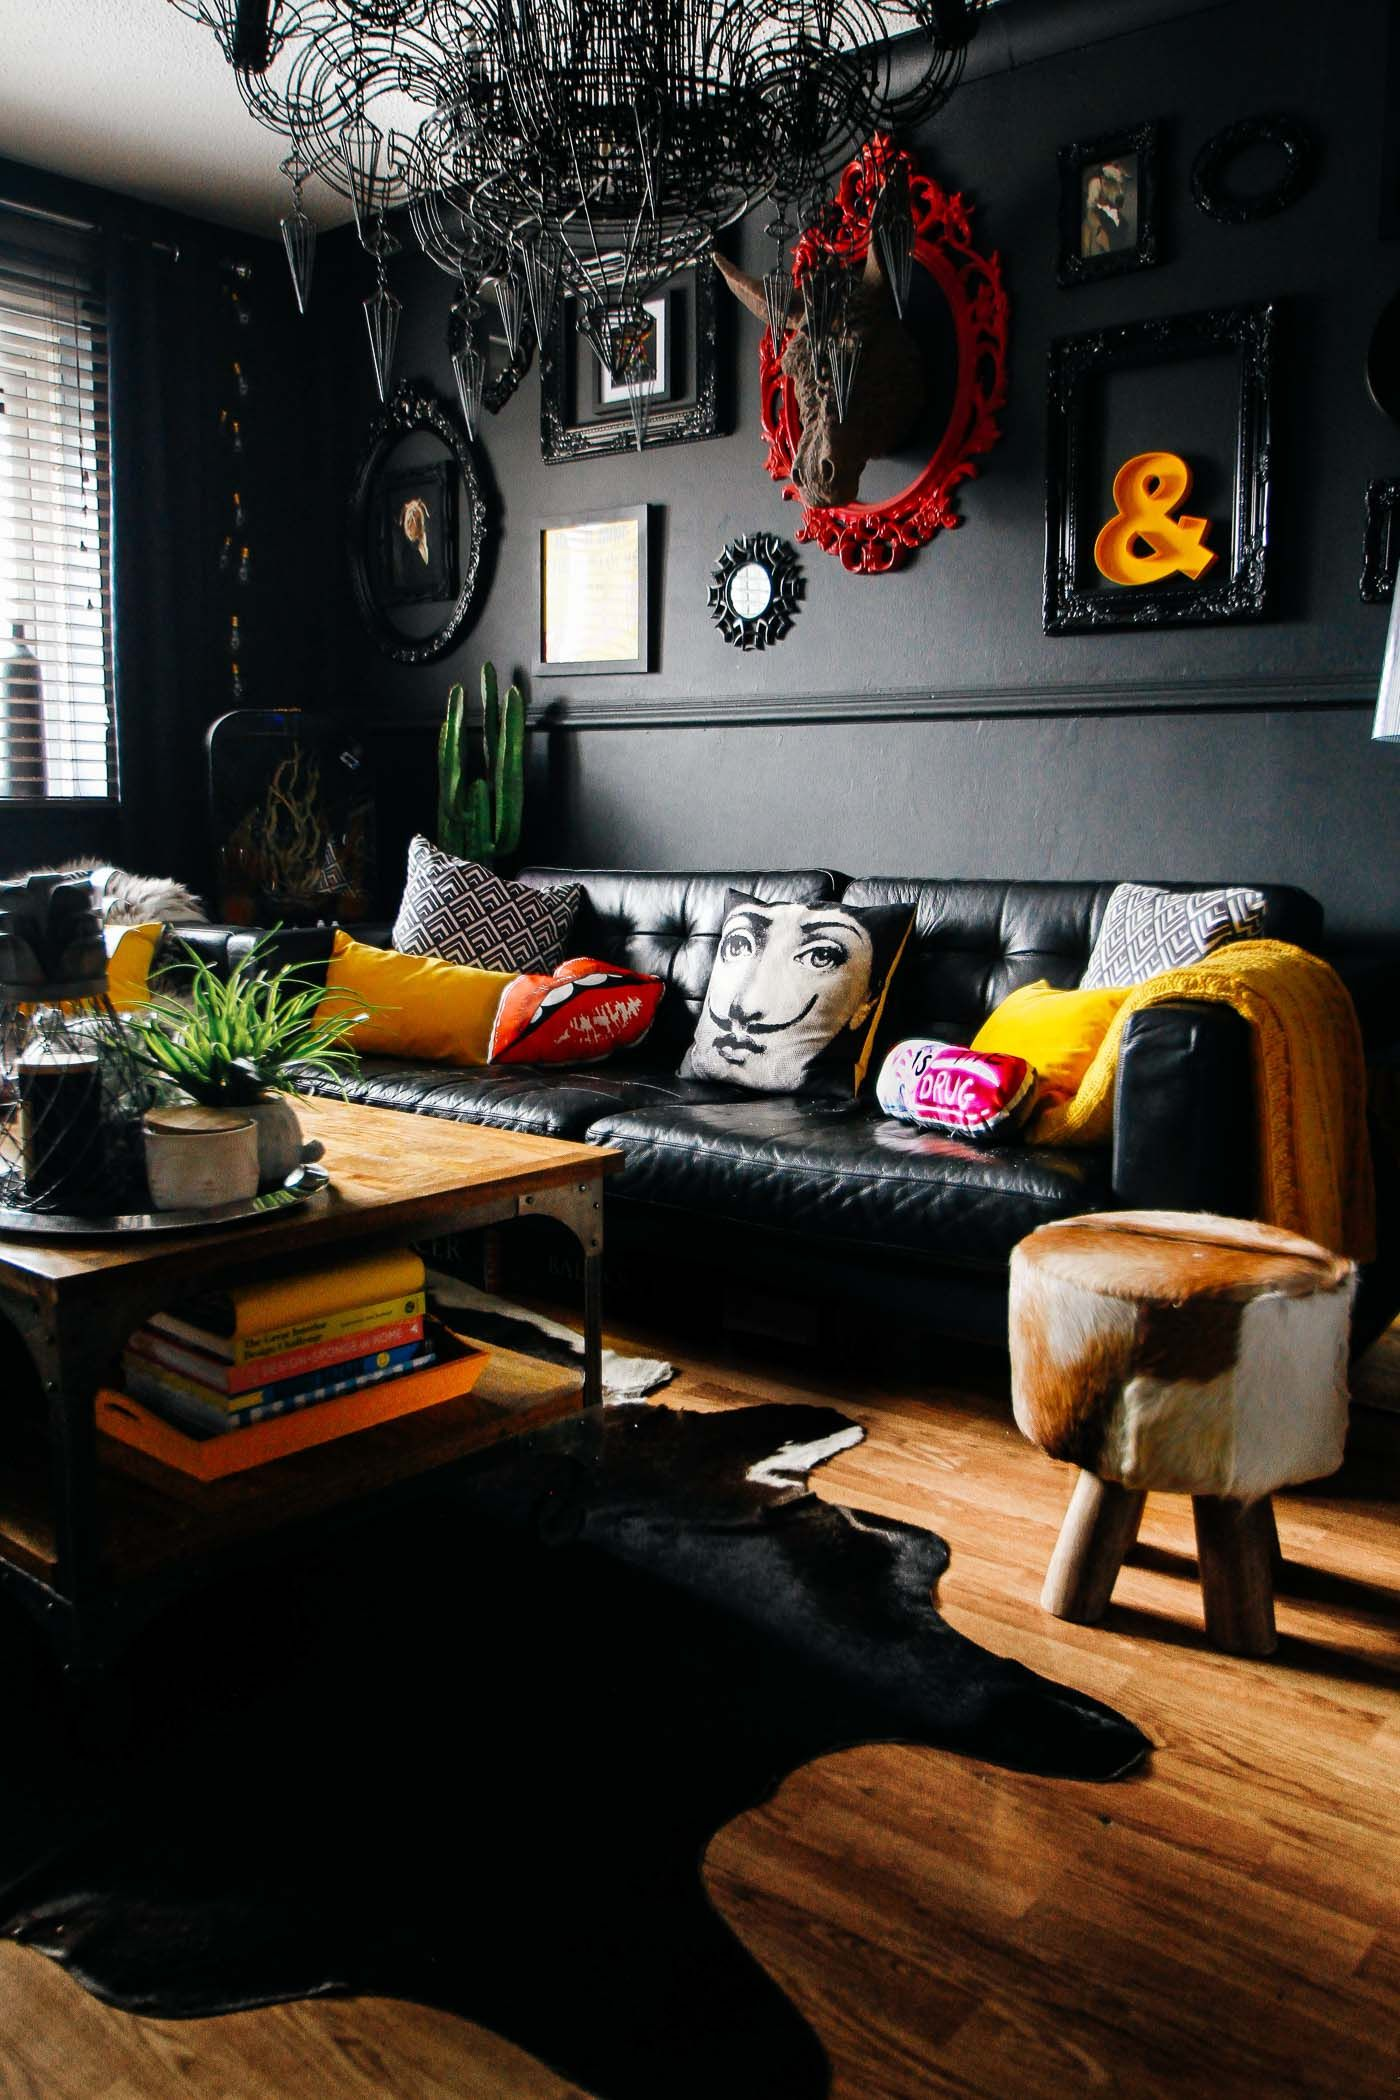 Your Gathered Home: A Rock & Roll Glam Flat in the UK - The